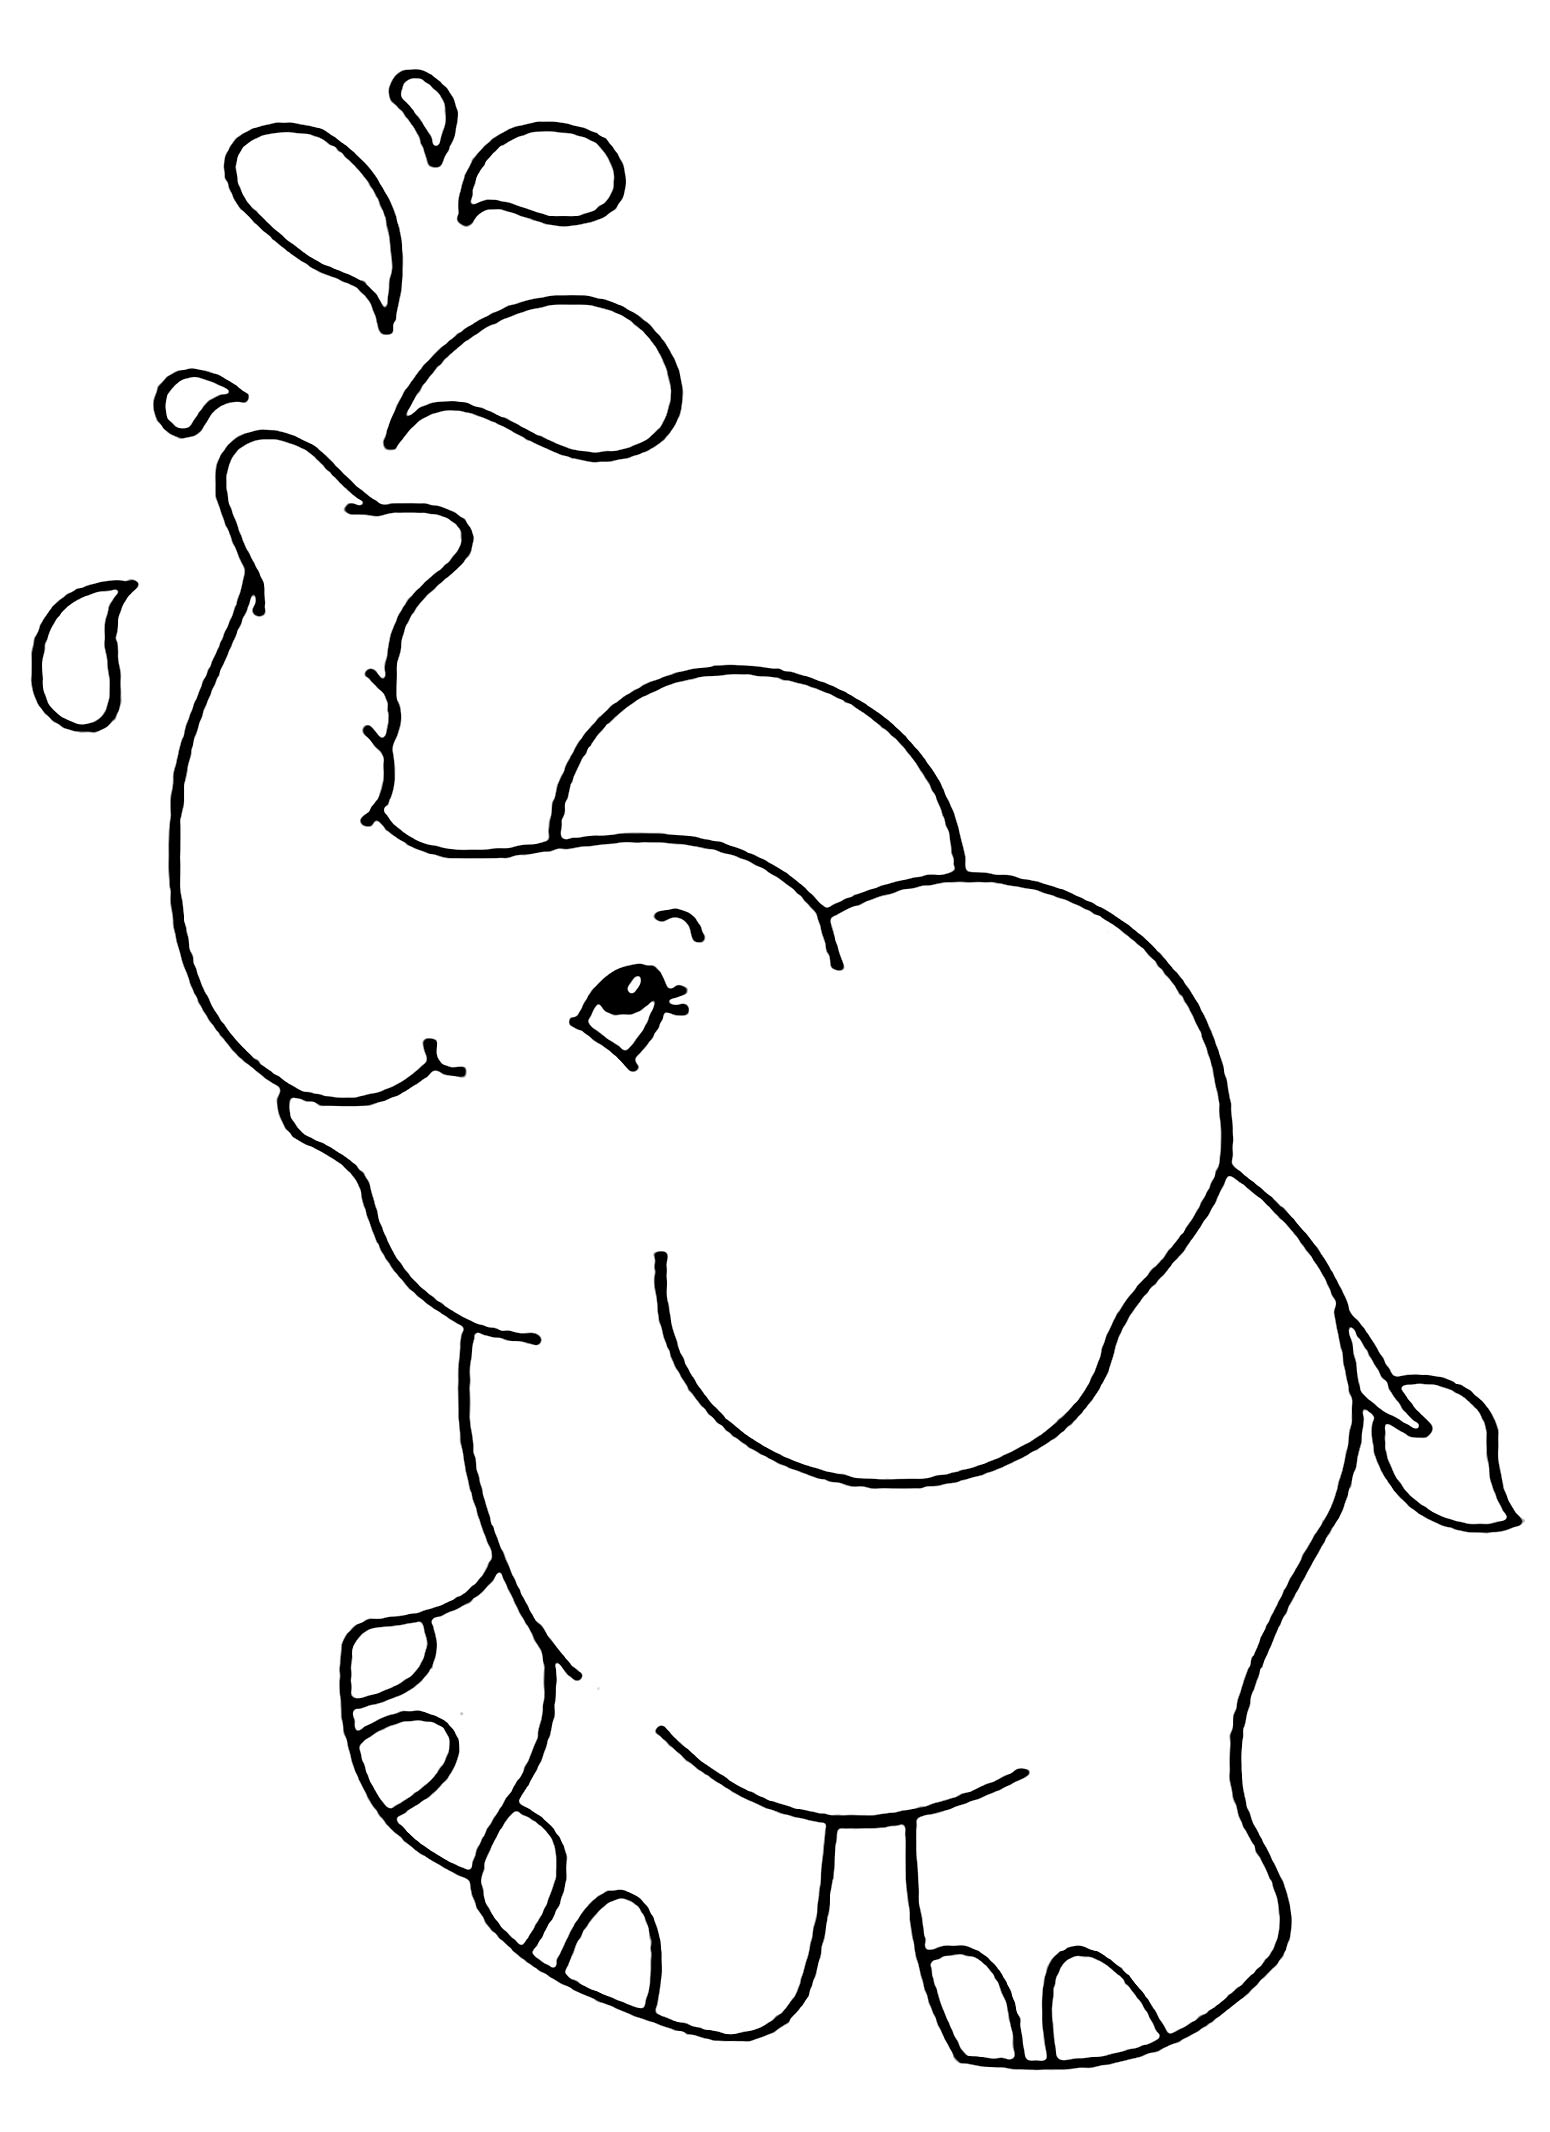 elephant images for colouring print download teaching kids through elephant coloring for colouring images elephant